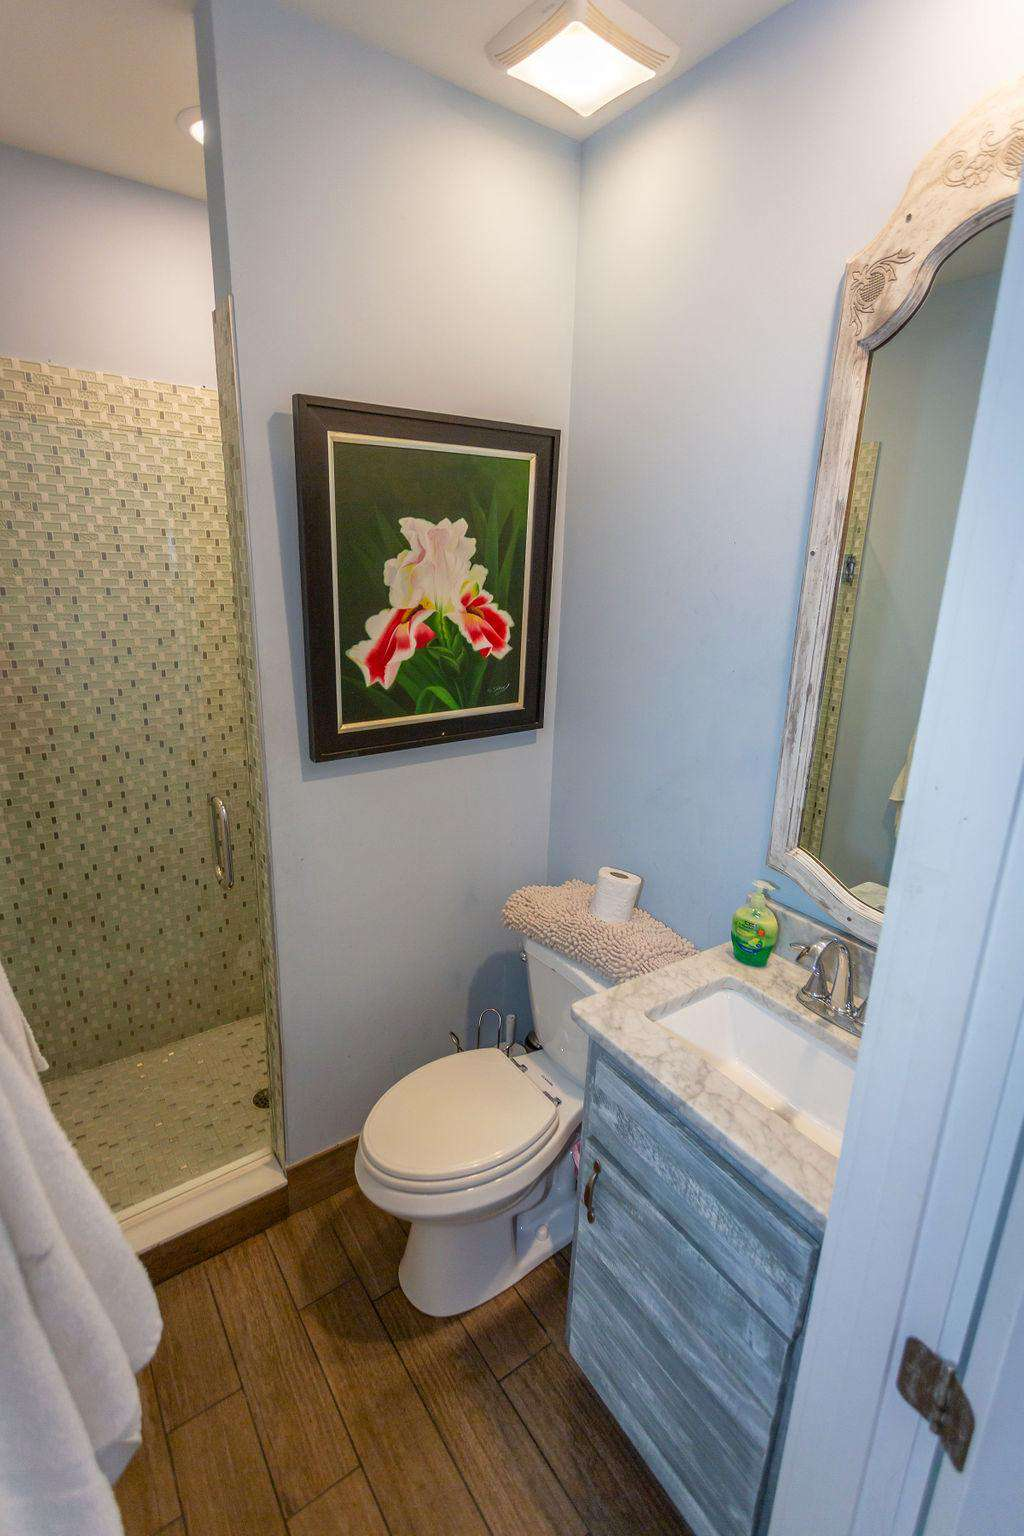 Bathroom # 6 has large white marble shower